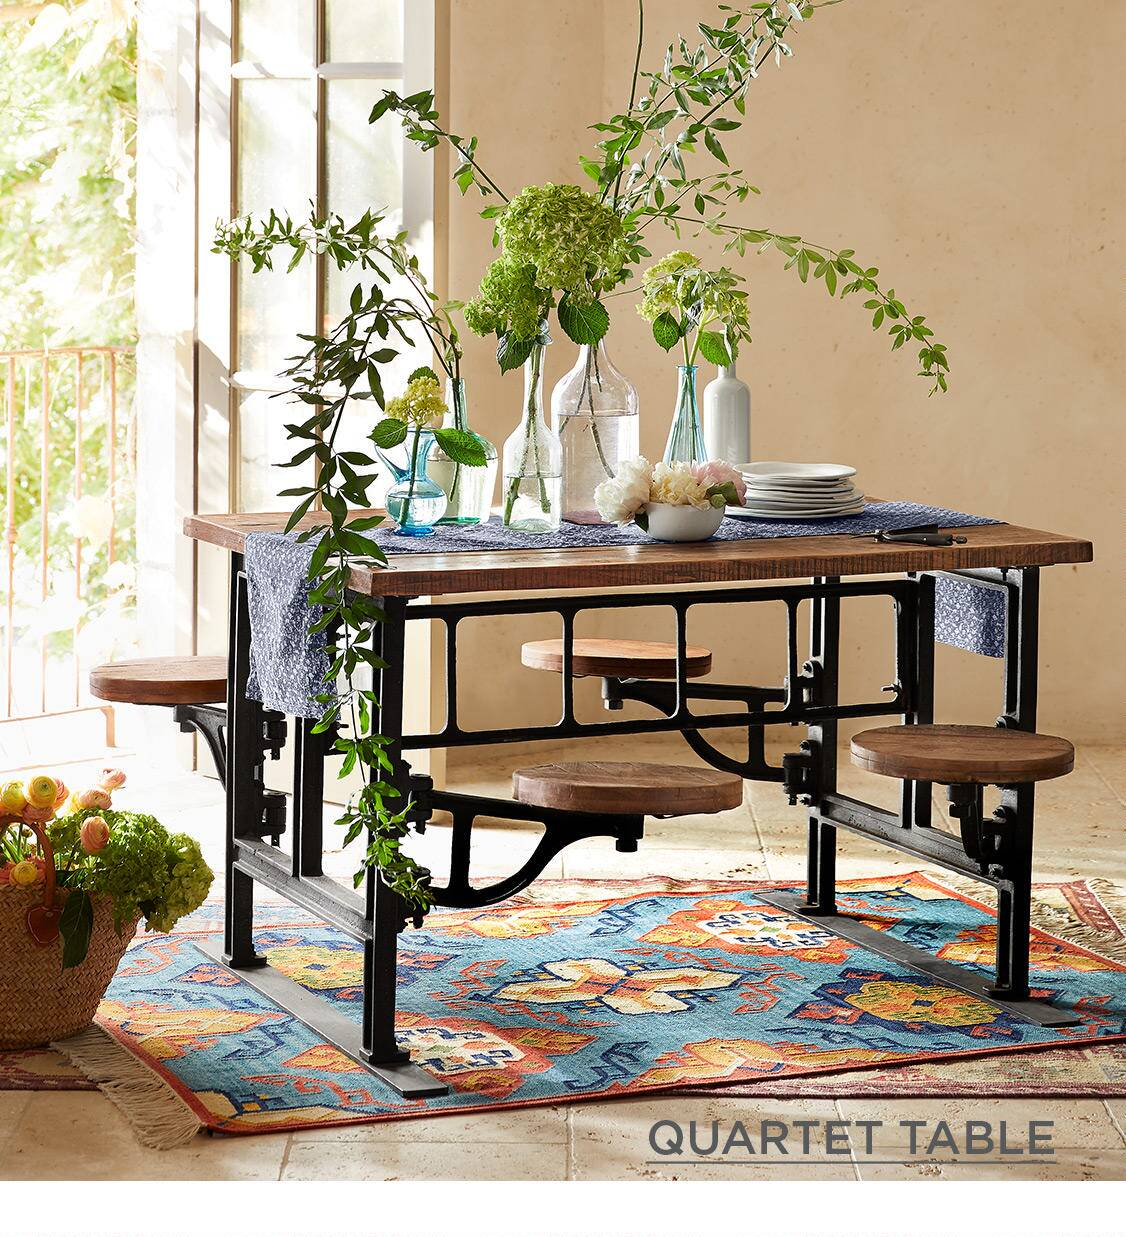 Quartet Table